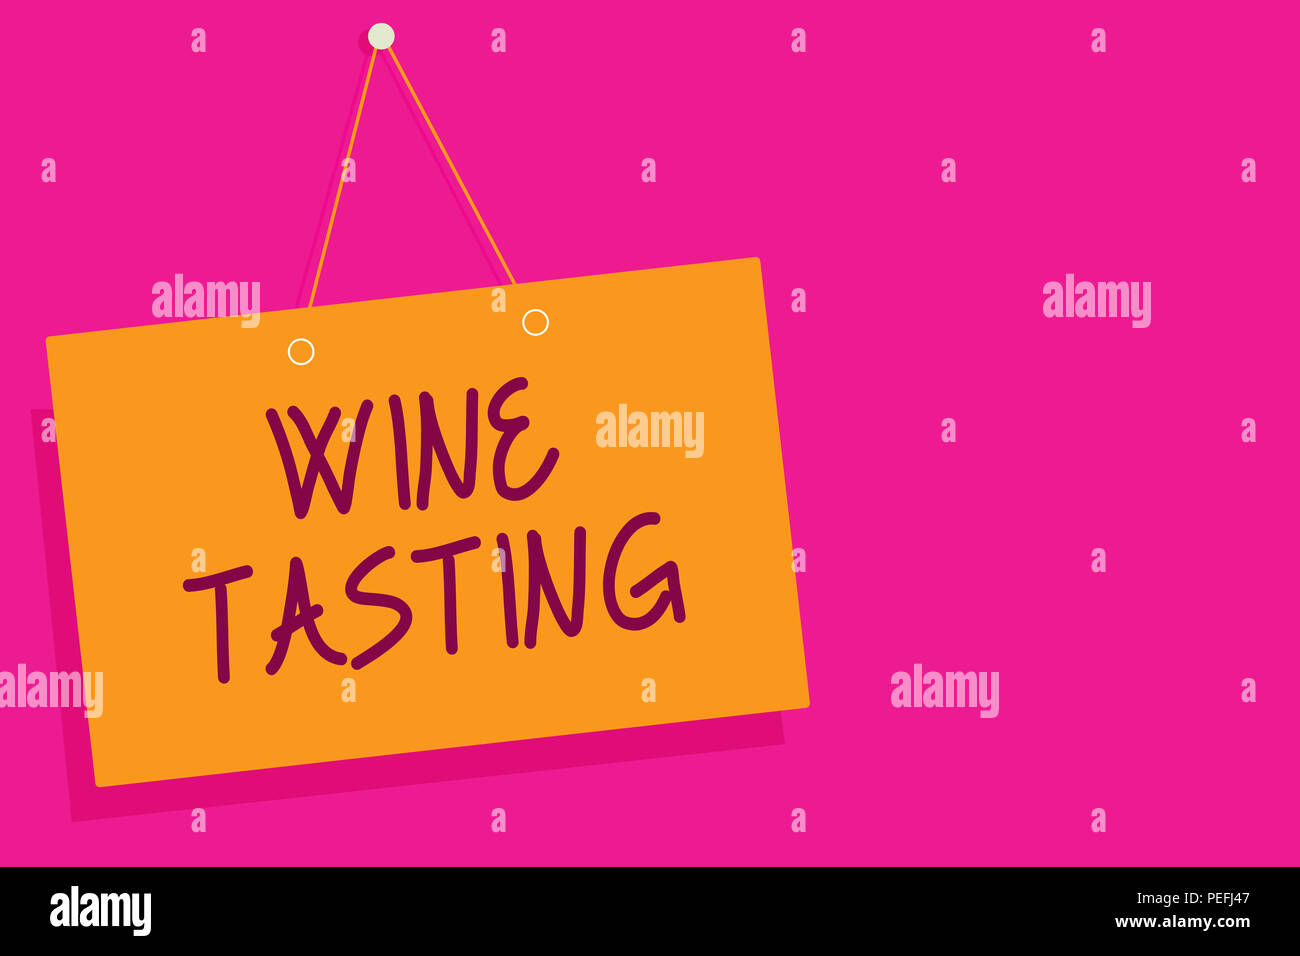 How to start a wine tasting business